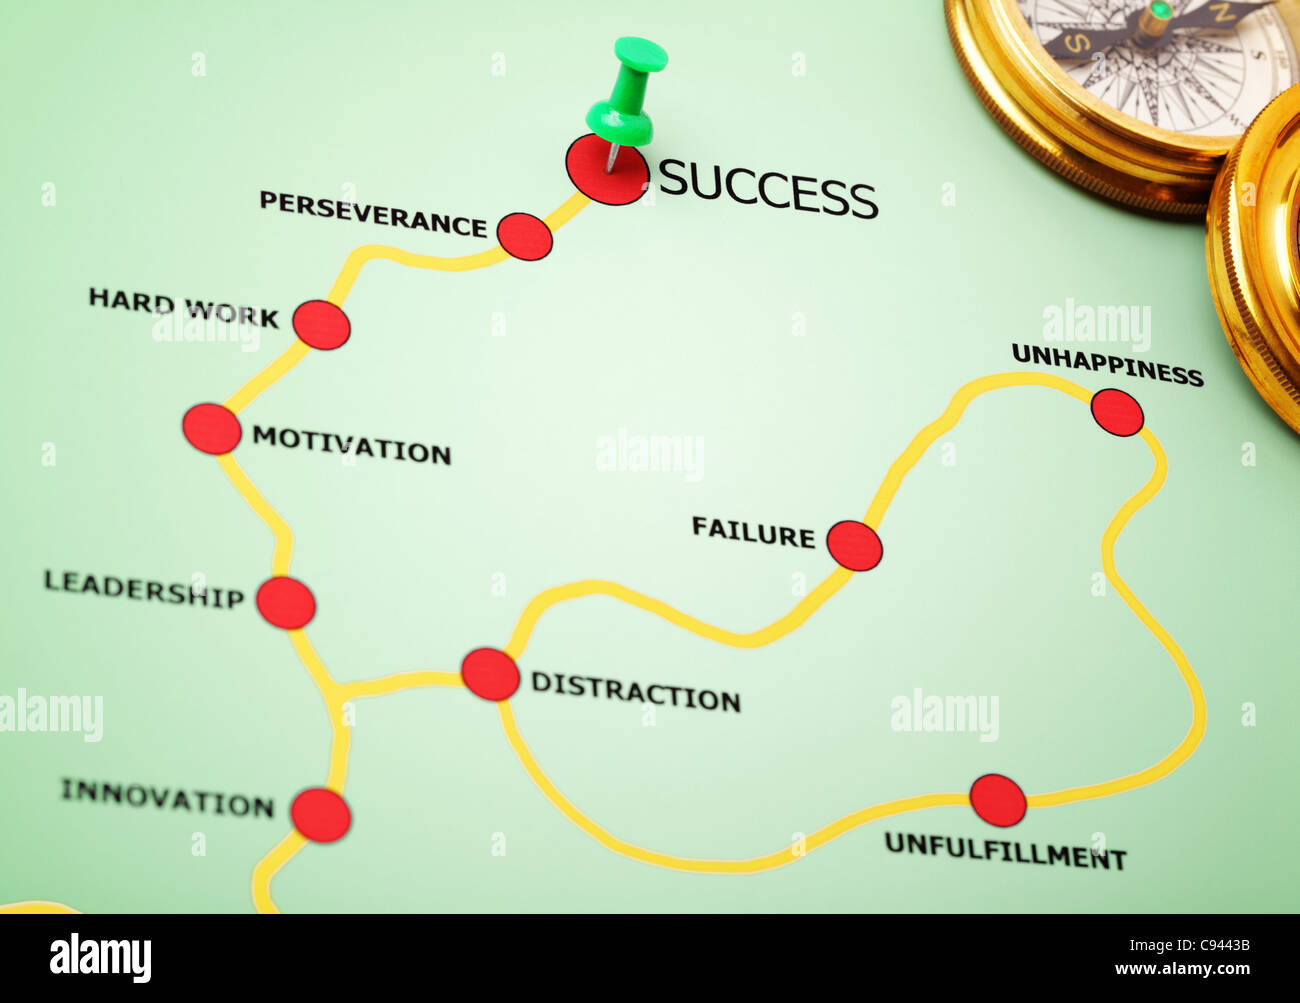 The road to success - Stock Image